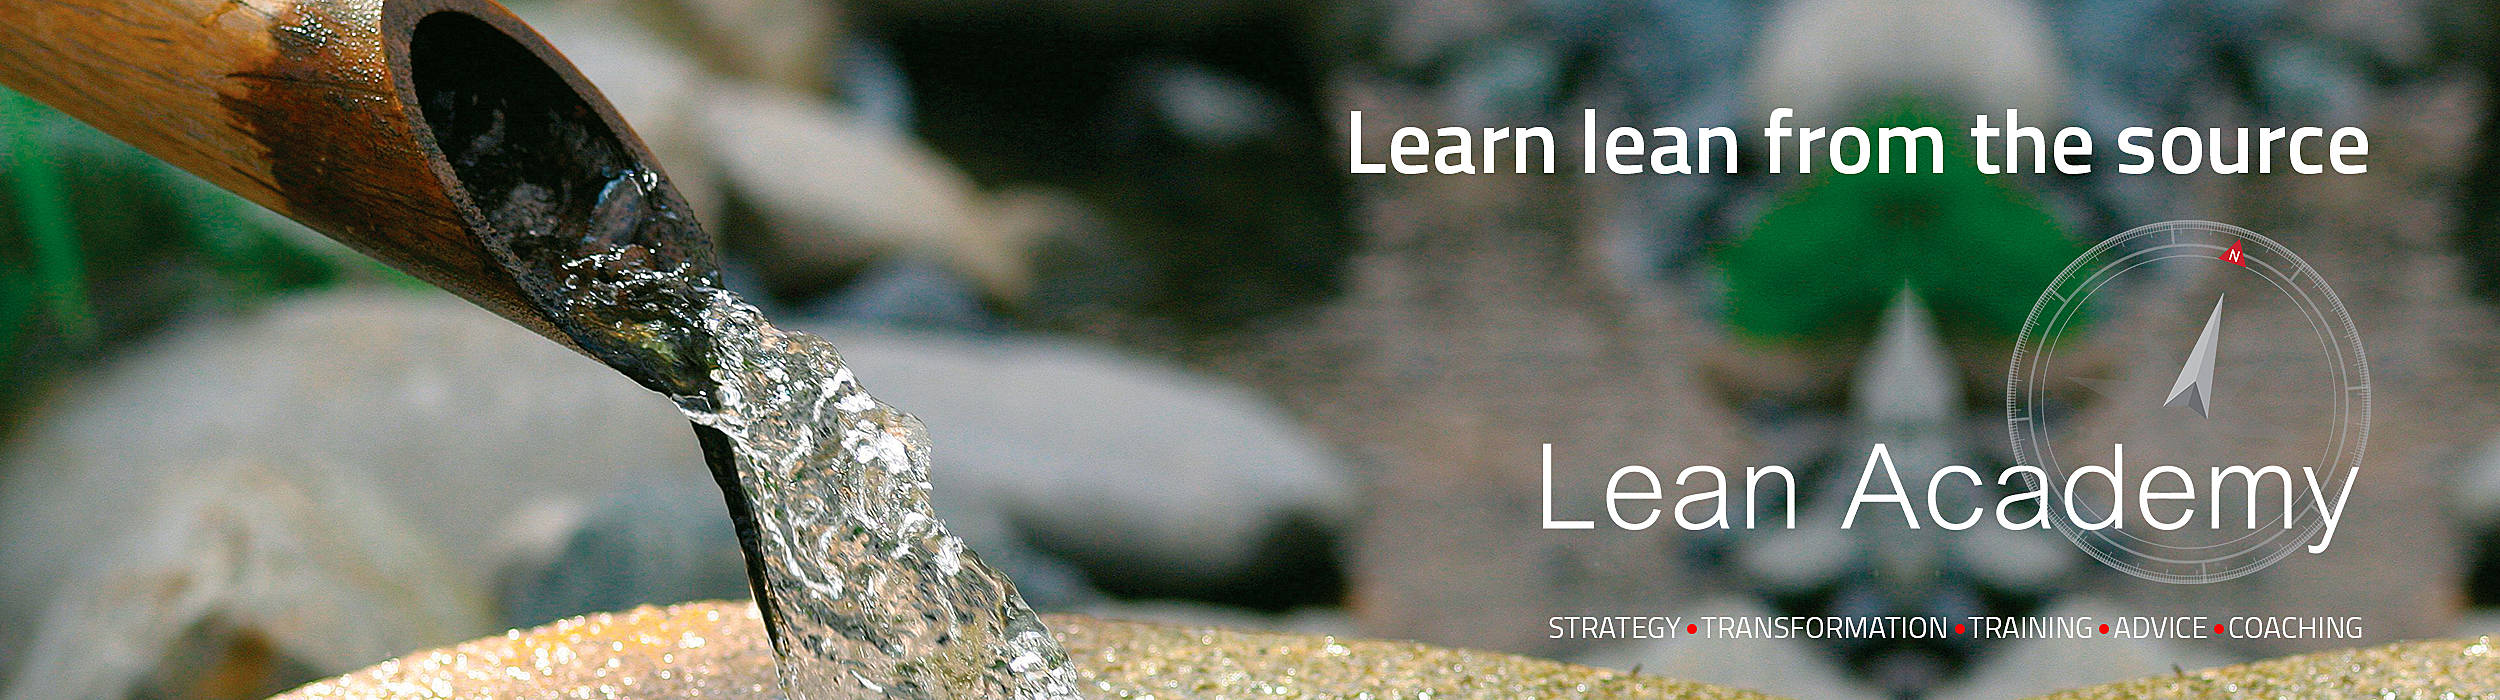 Toyota Lean Academy banner - learn lean from the source